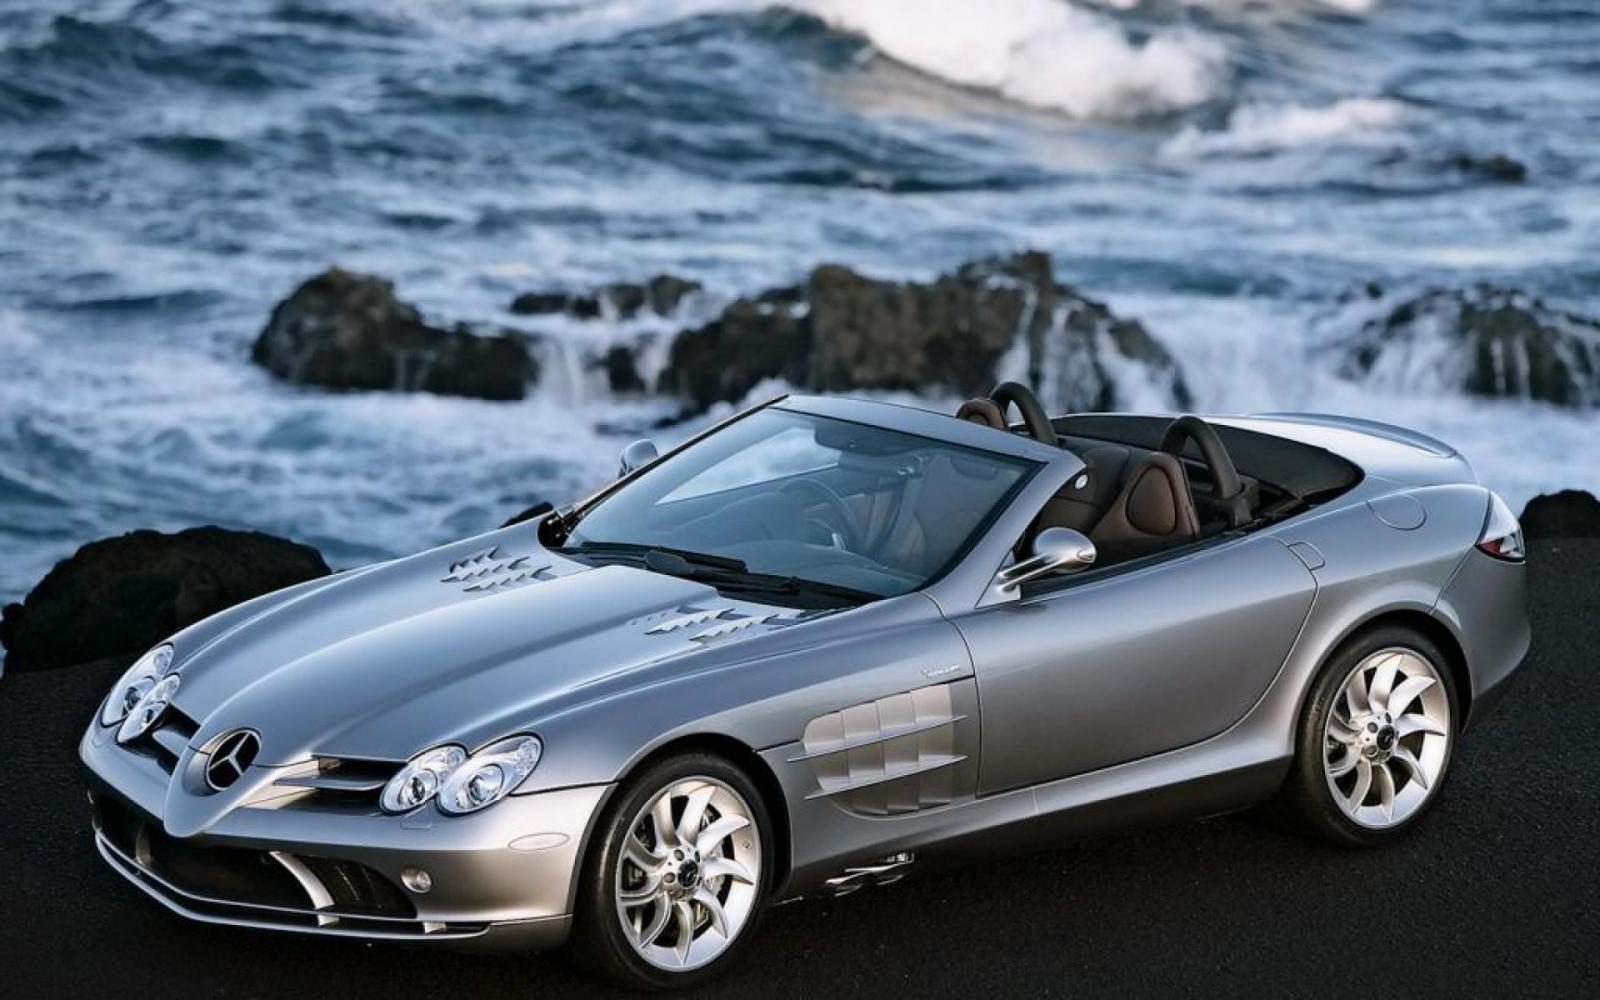 2008 mercedes benz slr mclaren information and photos